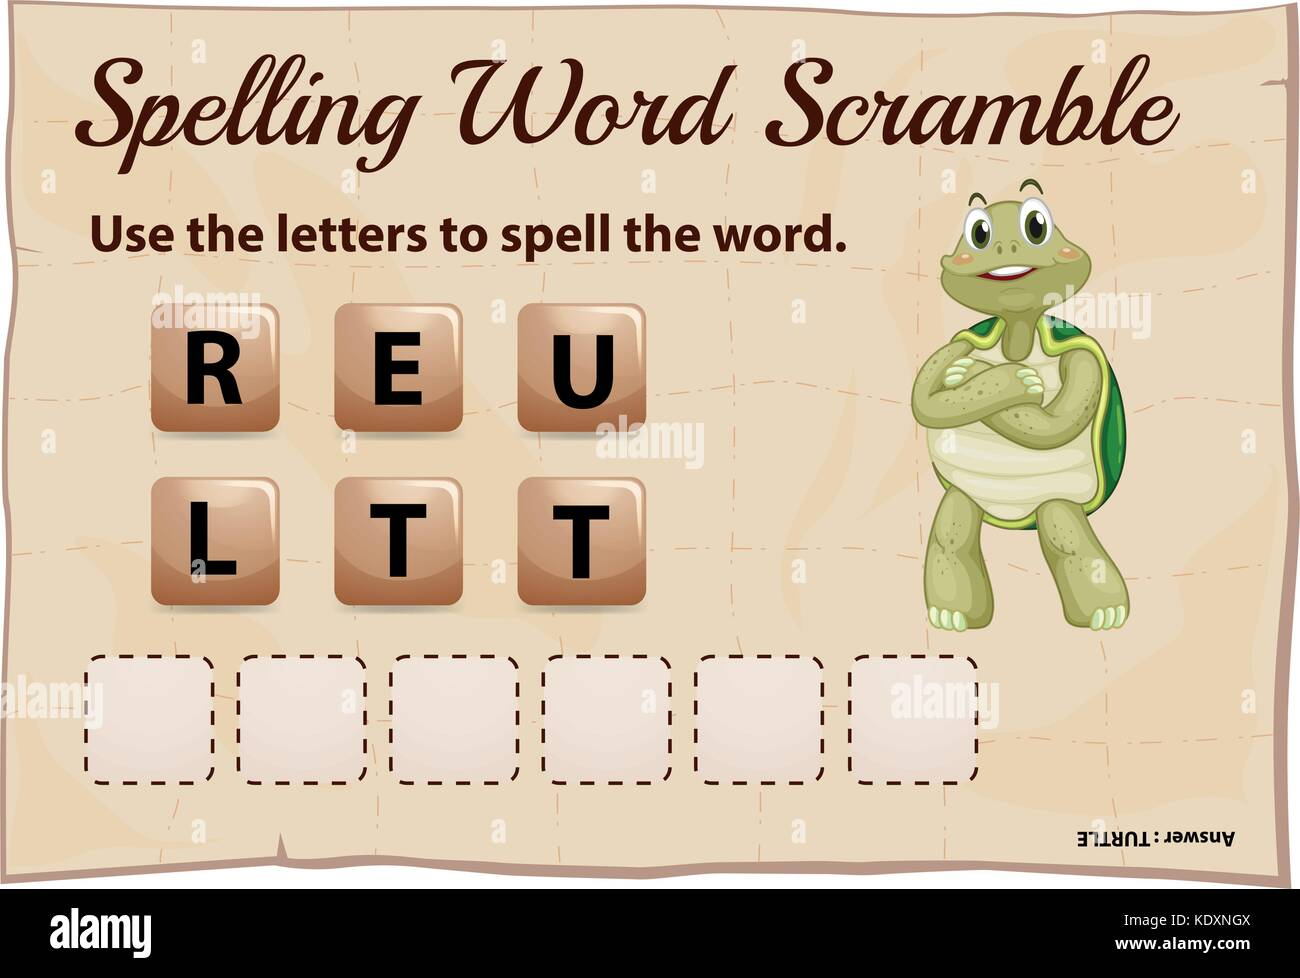 Spelling word scramble for word turtle illustration - Stock Vector